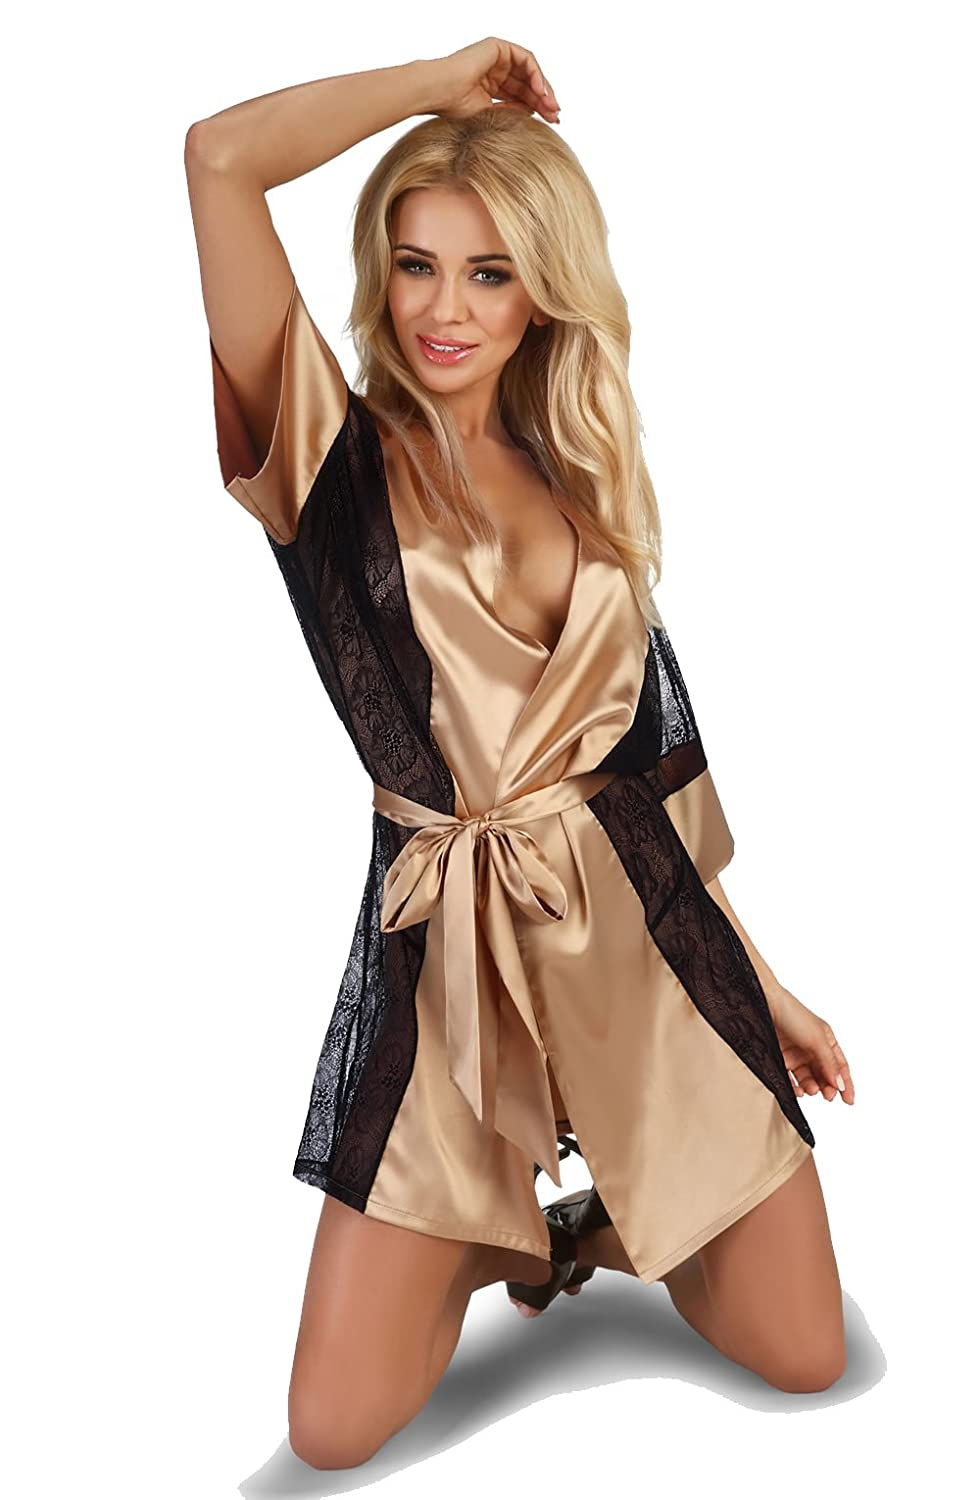 Sexy Gold Satin Tied At The Waist Black Lace Sides Trimmed Dressing Gown & Thong Set